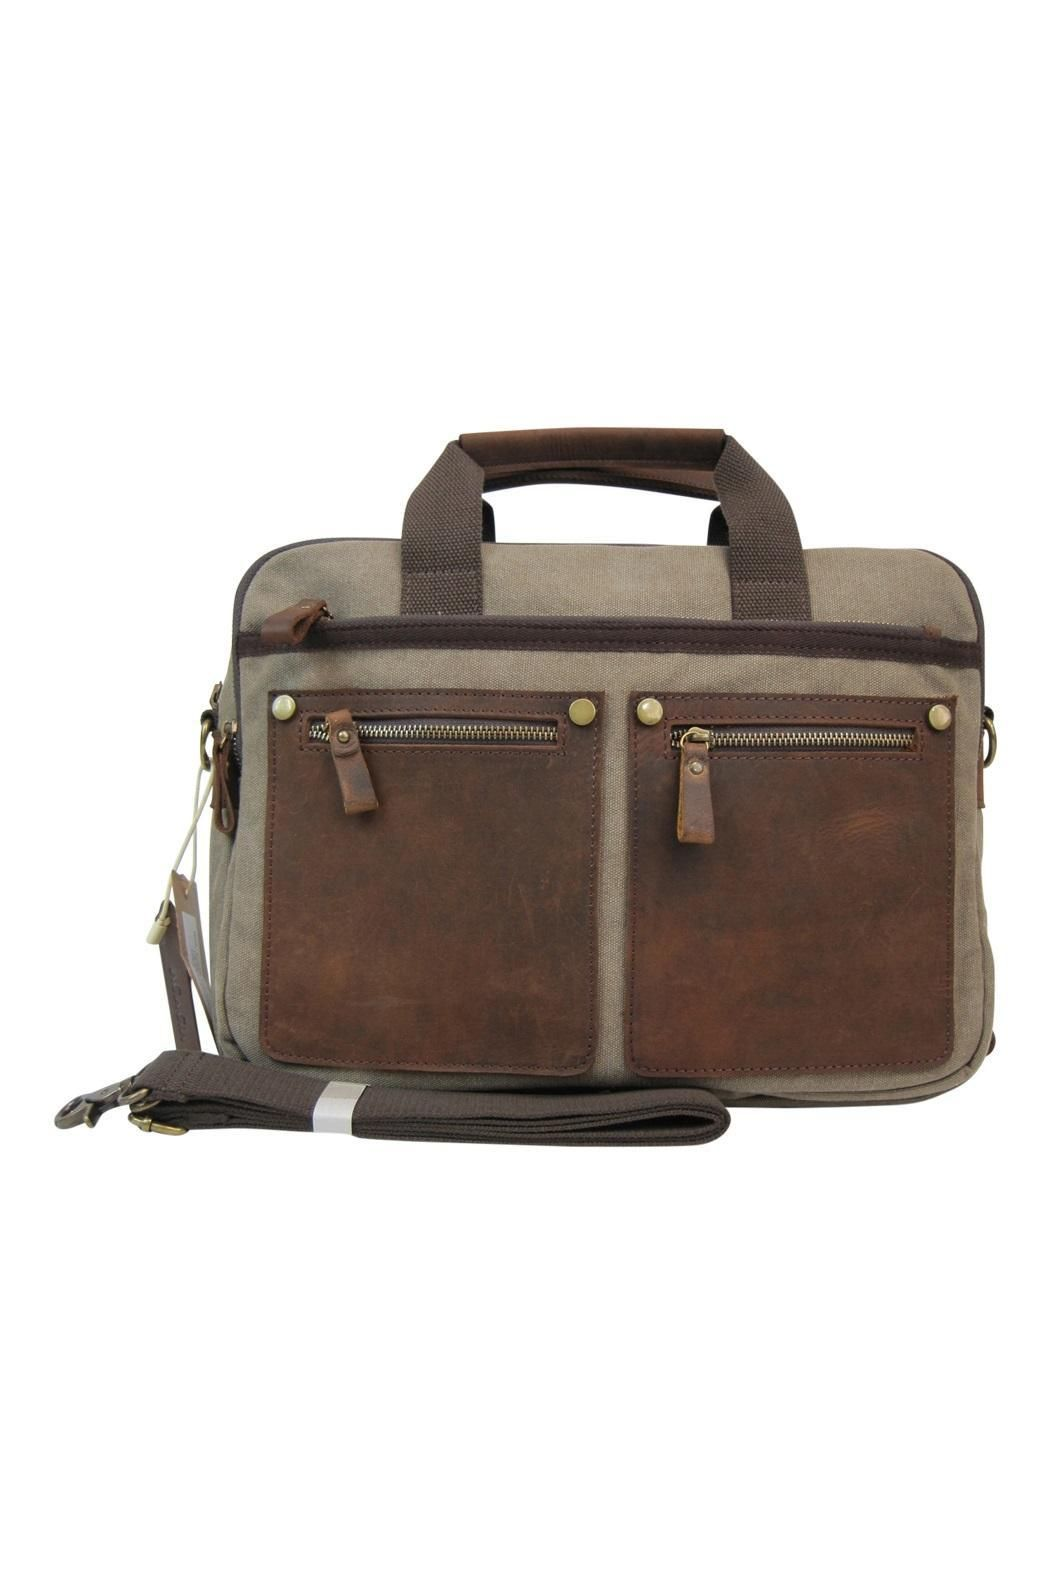 b3b2bbda3df5 Stylish brief case look canvas bag. Compartment specially built-in ready  for tablet or